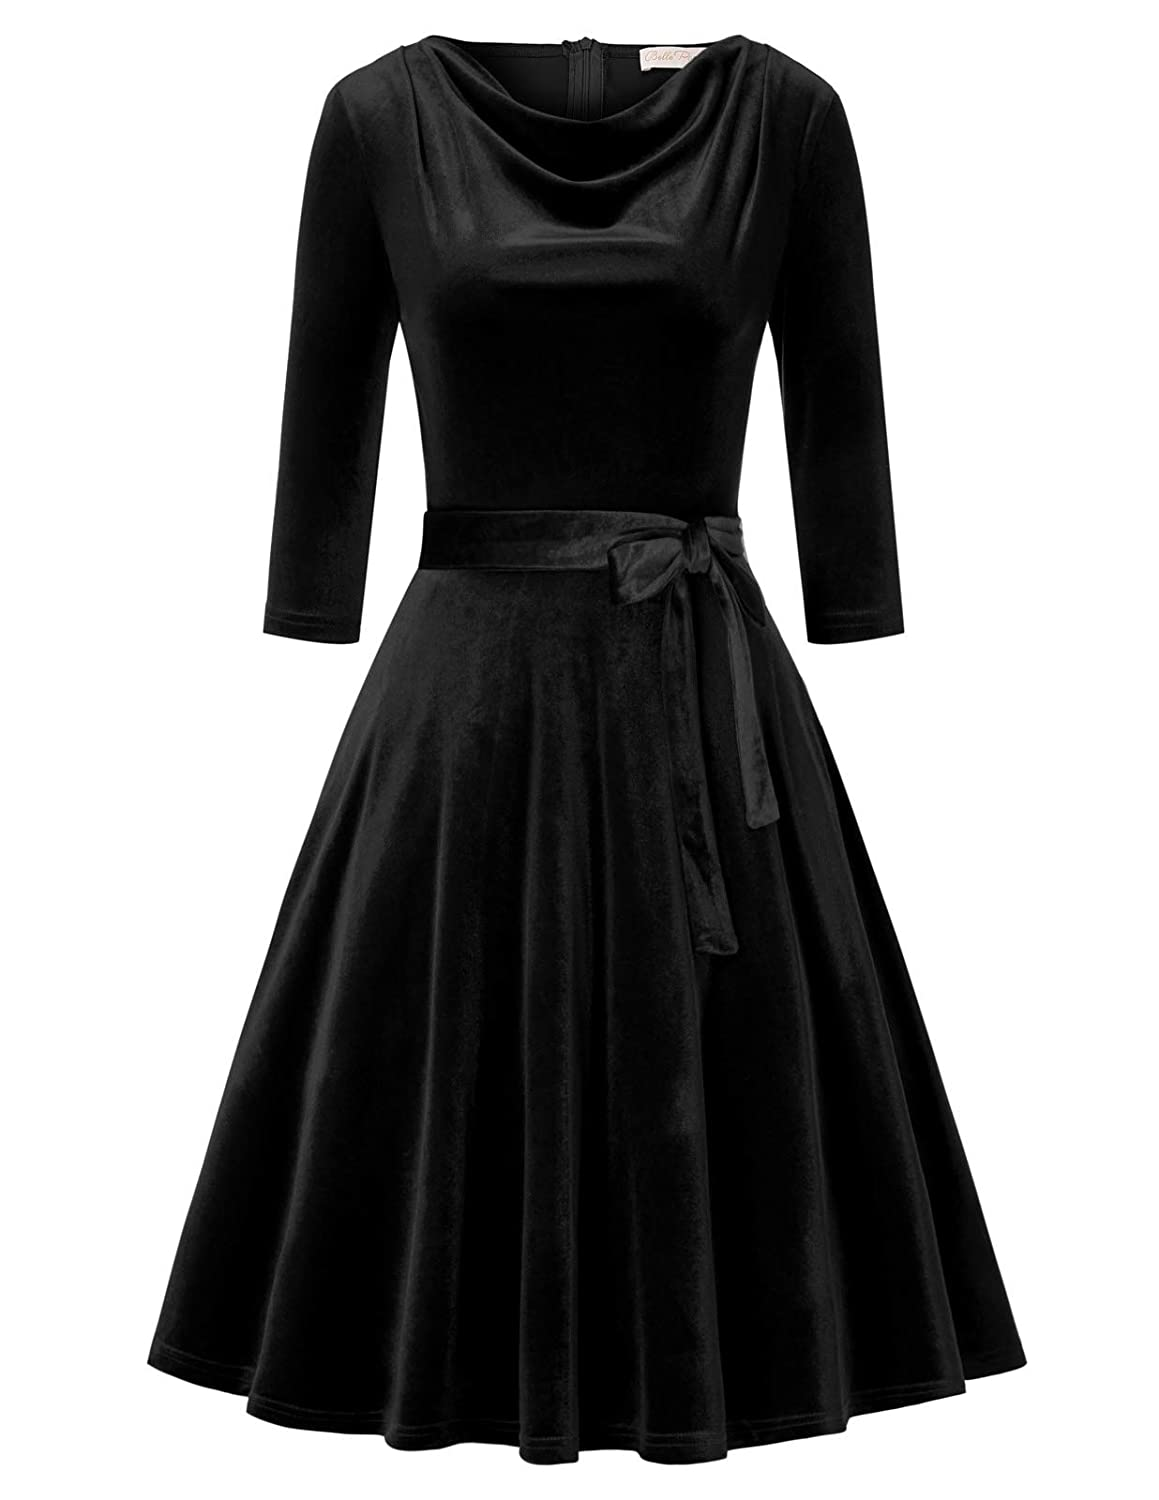 1950s Bridesmaid Dresses | 50s Bridesmaid Dresses Belle Poque Womens Cowl Neck Velvet Dress 1950s Vintage Swing Midi Dresses with Pockets $32.99 AT vintagedancer.com